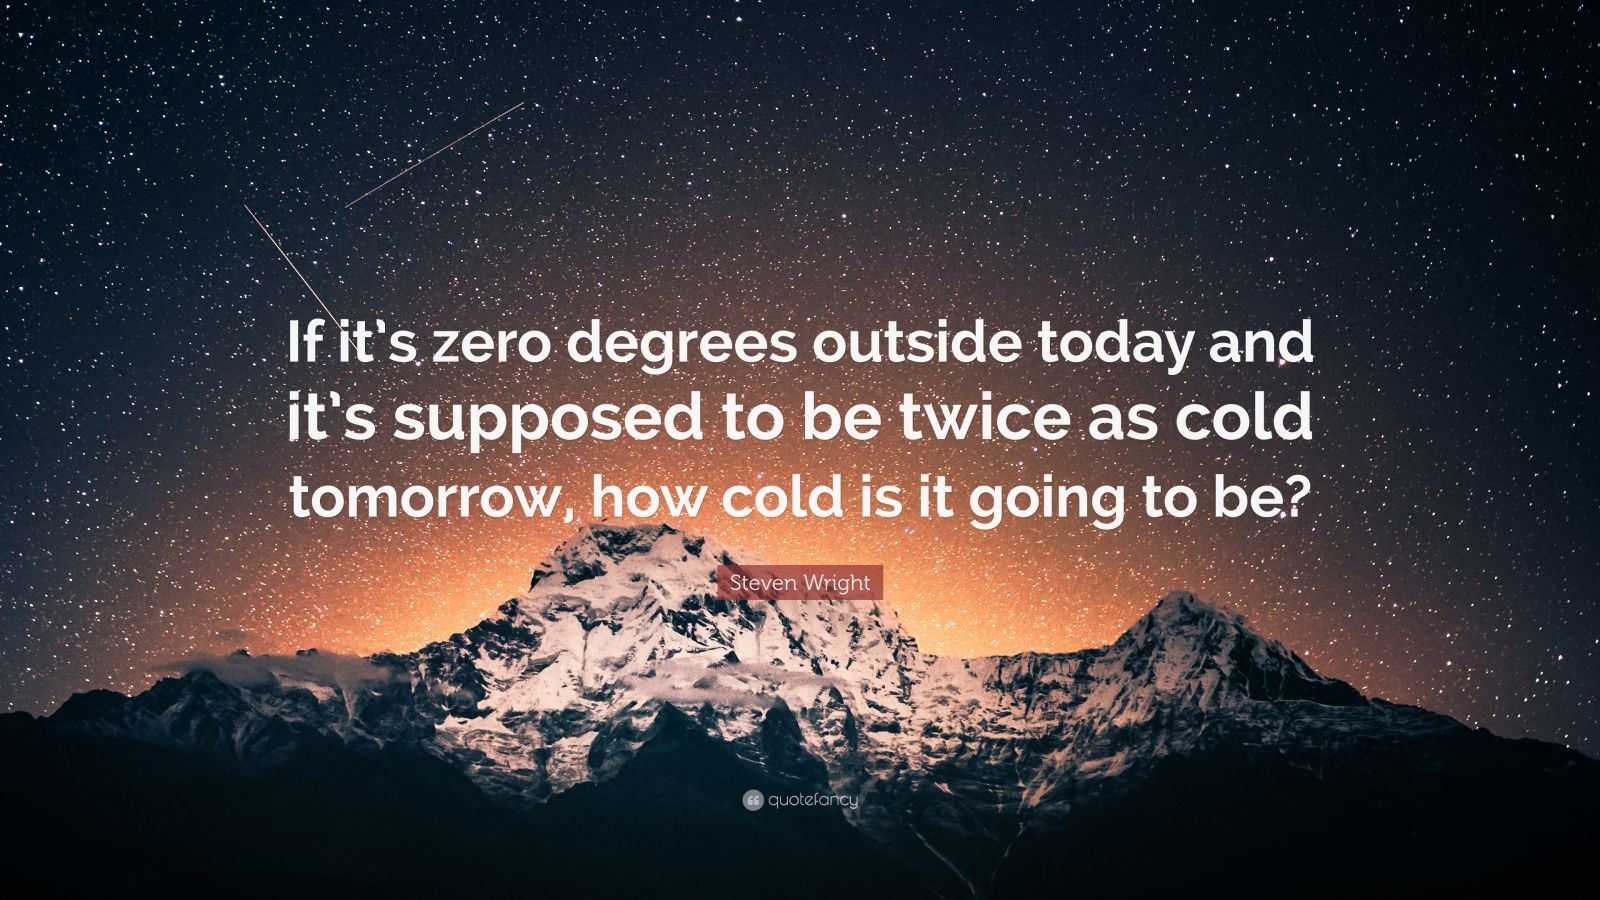 """Steven Wright Quote: """"If it's zero degrees outside today and it's supposed to be twice as cold tomorrow, how cold is it going to be?"""""""